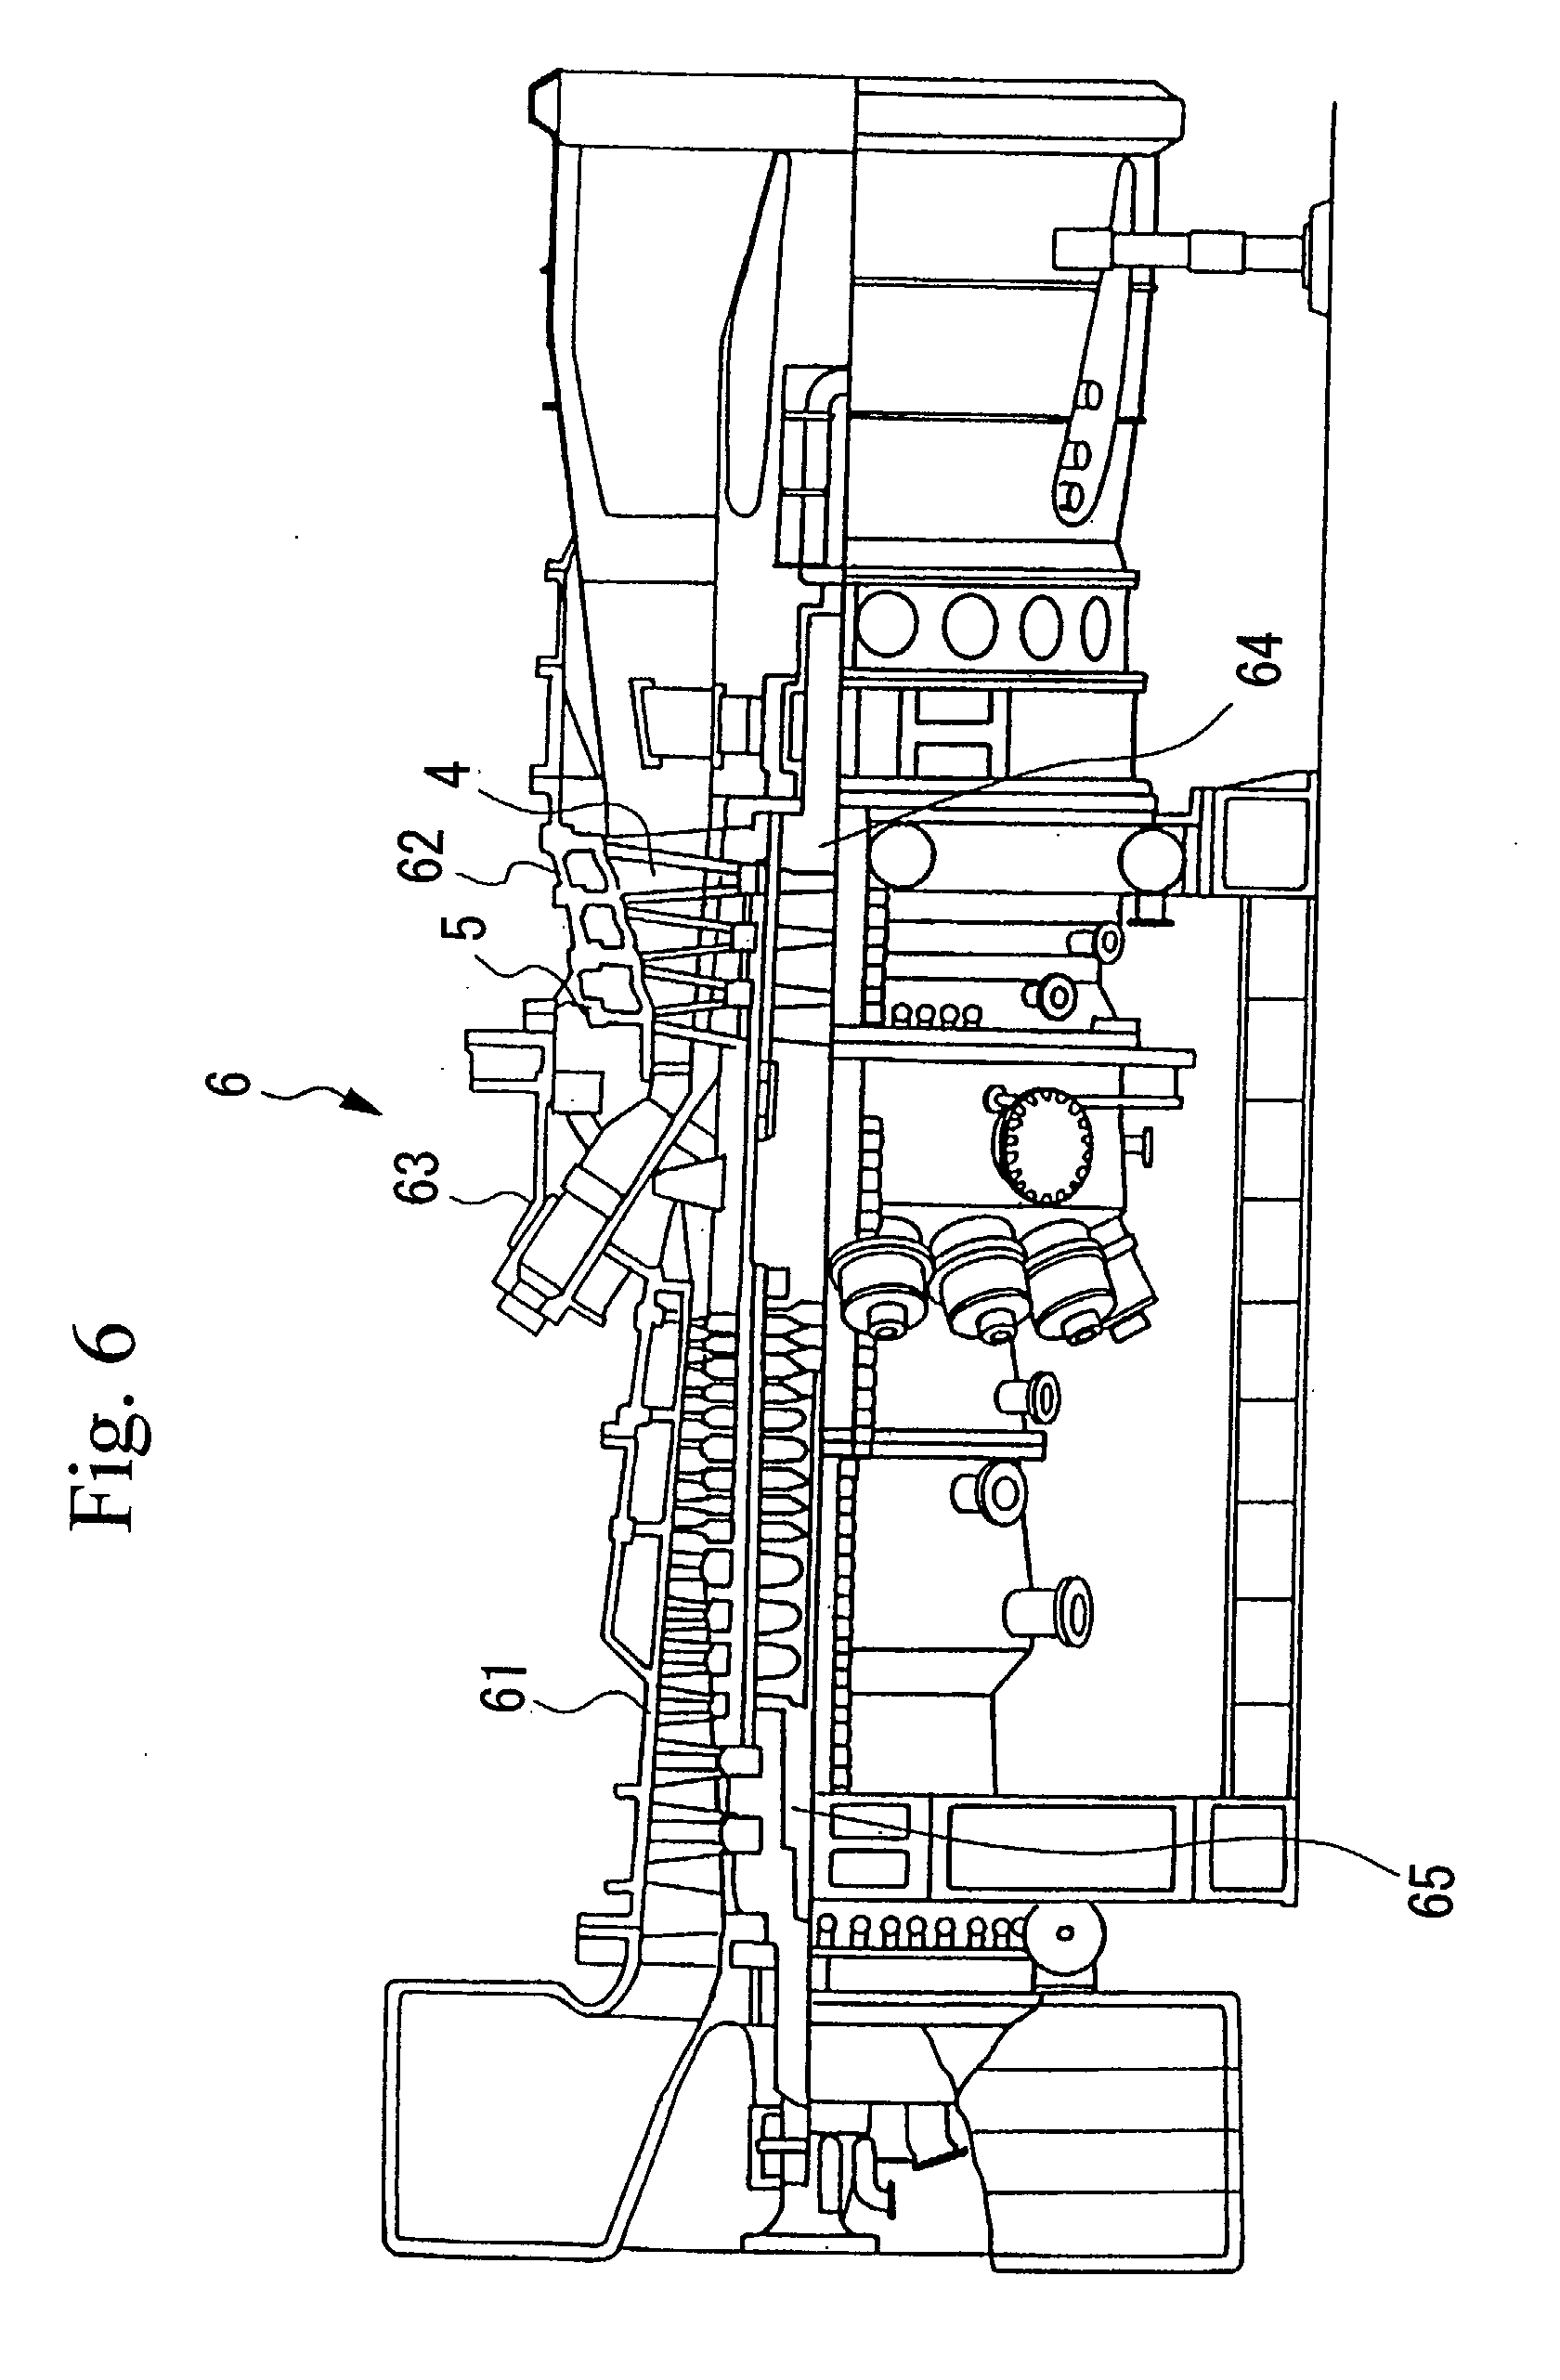 Patent EP A2 Thermal barrier coating material gas turbine